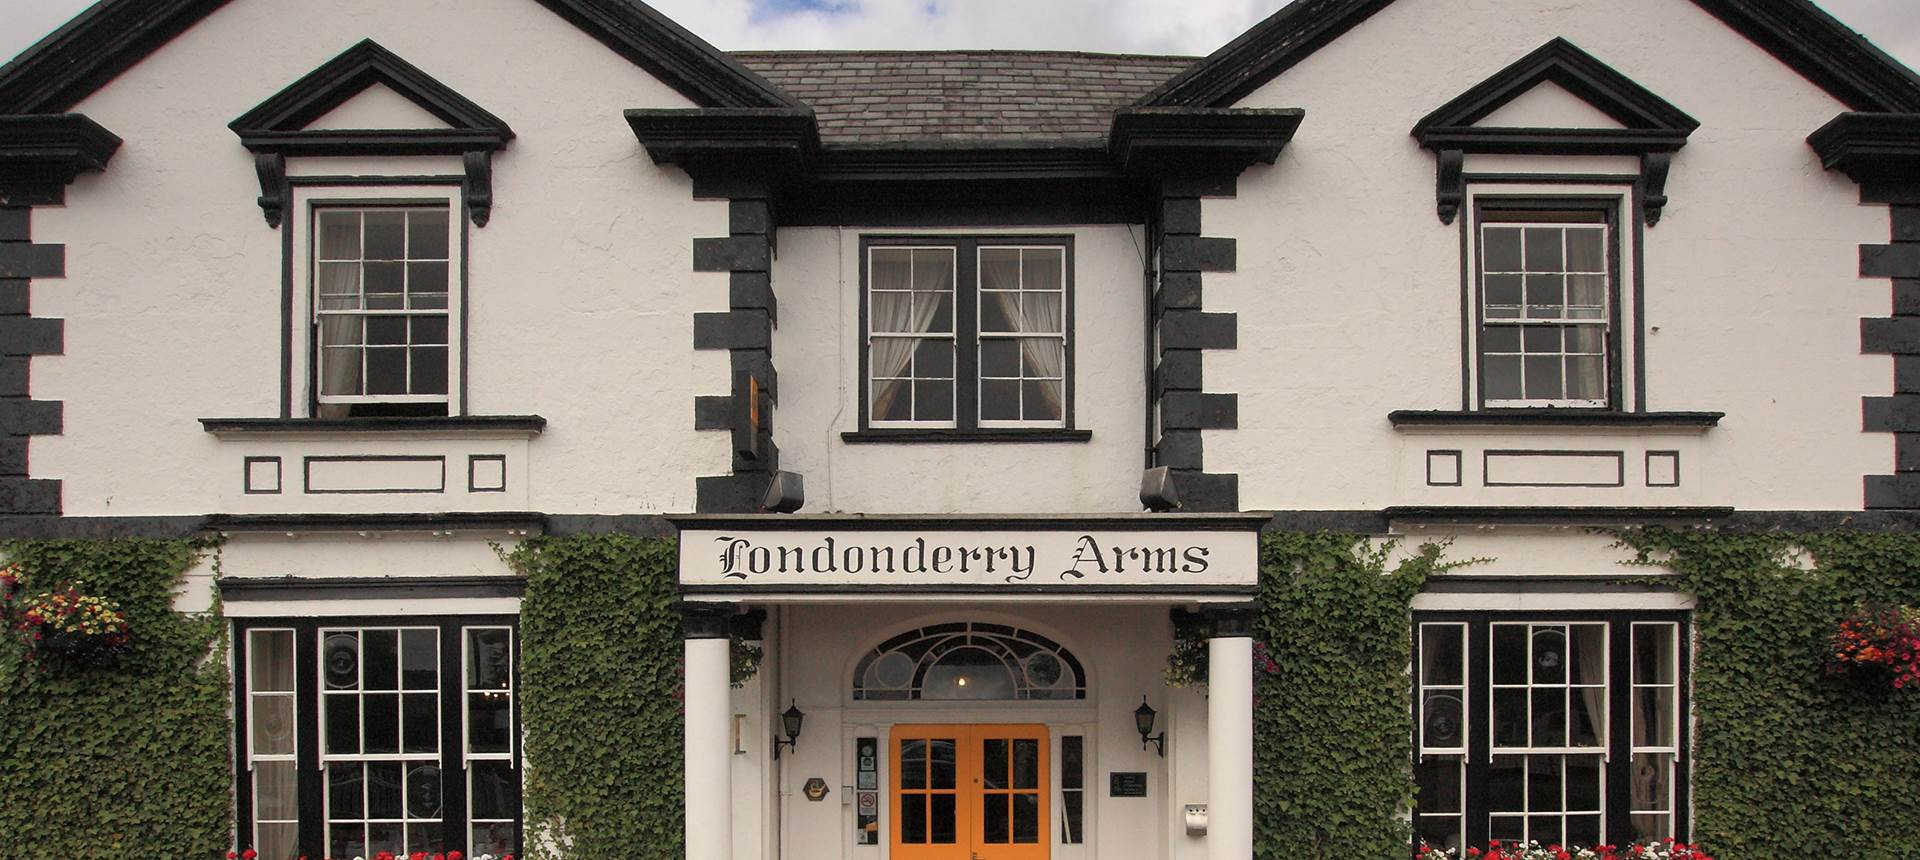 Londonderry Arms Northern Ireland